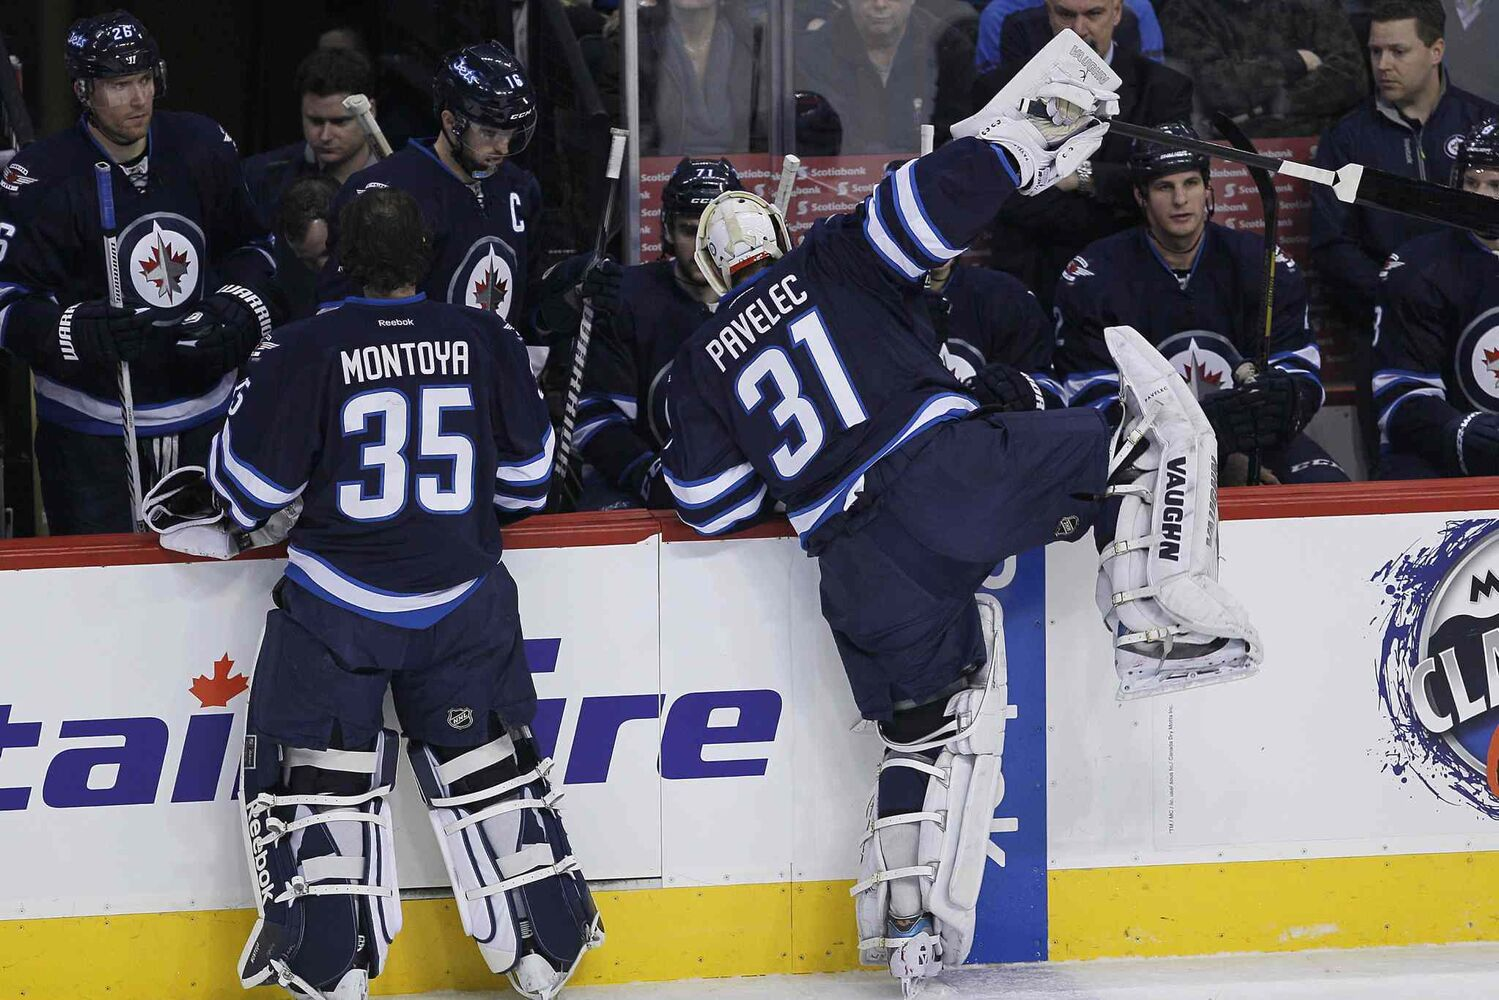 Winnipeg Jets goaltender Ondrej Pavelec (right) climbs over the boards in frustration after being pulled during the first period. Al Montoya (left) came in to replace Pavelec. (JOHN WOODS / THE CANADIAN PRESS)